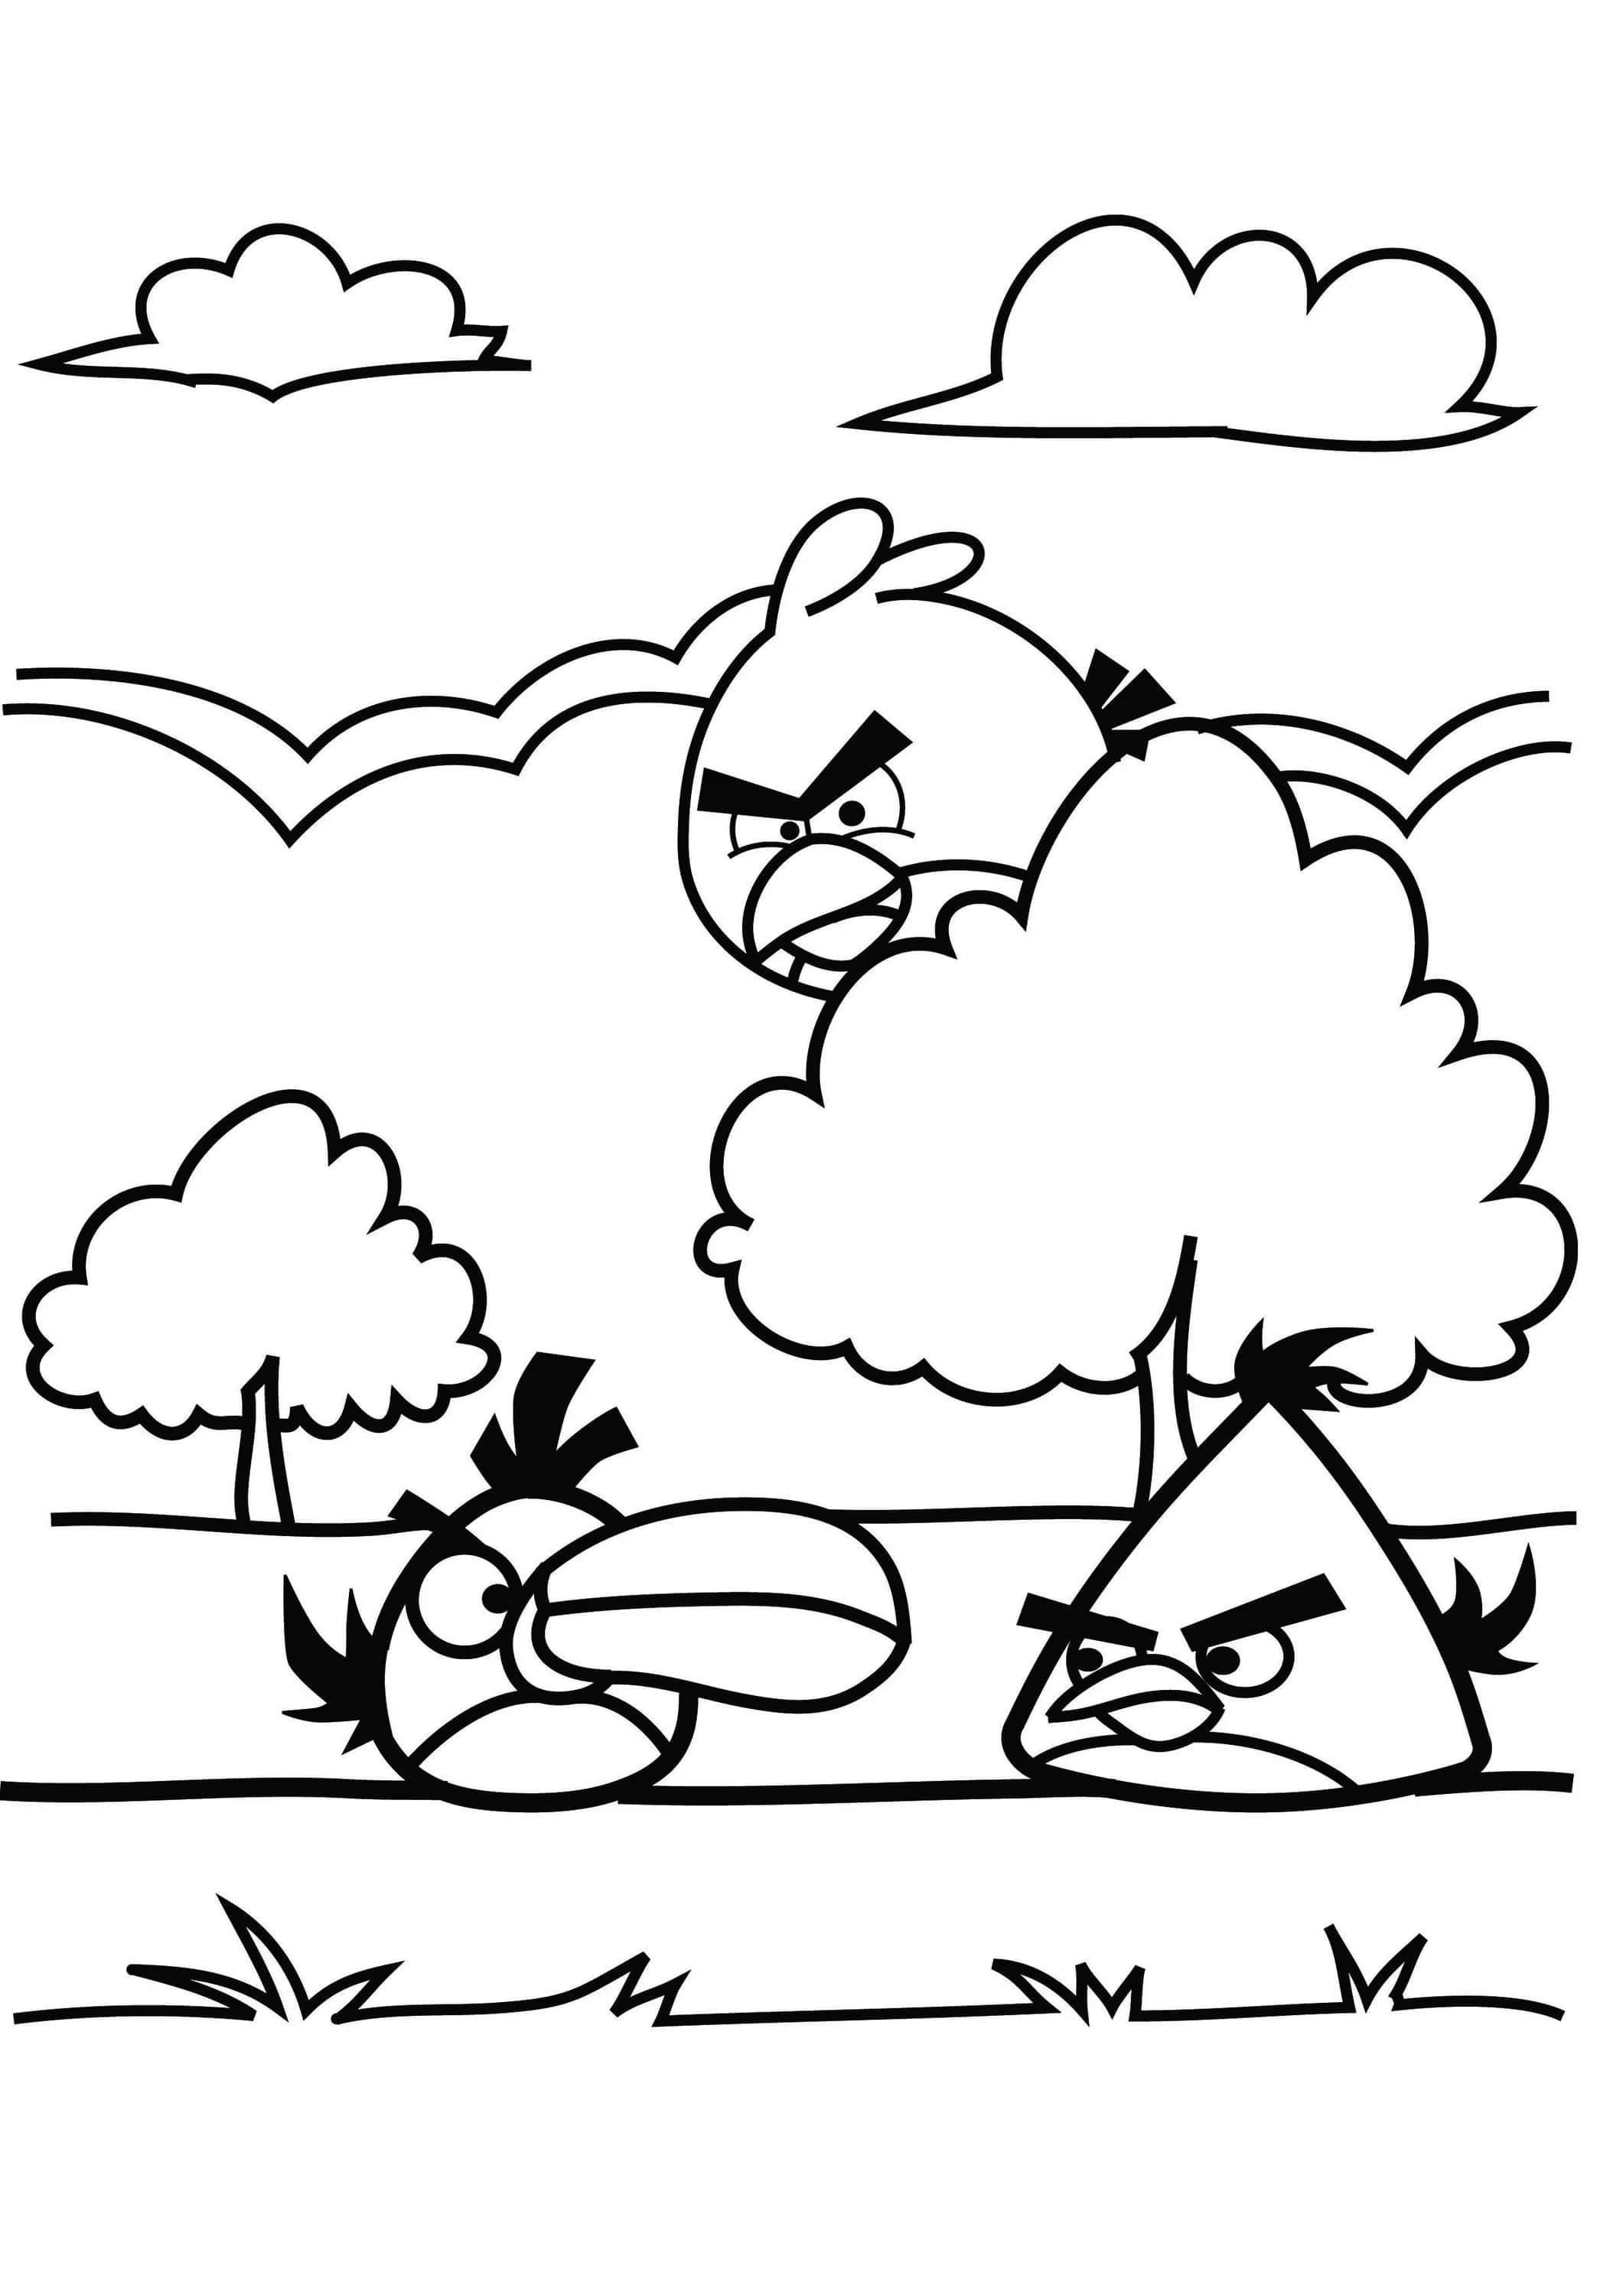 Angry Birds Seasons Coloring Pages - Coloring Home | 3000x2121